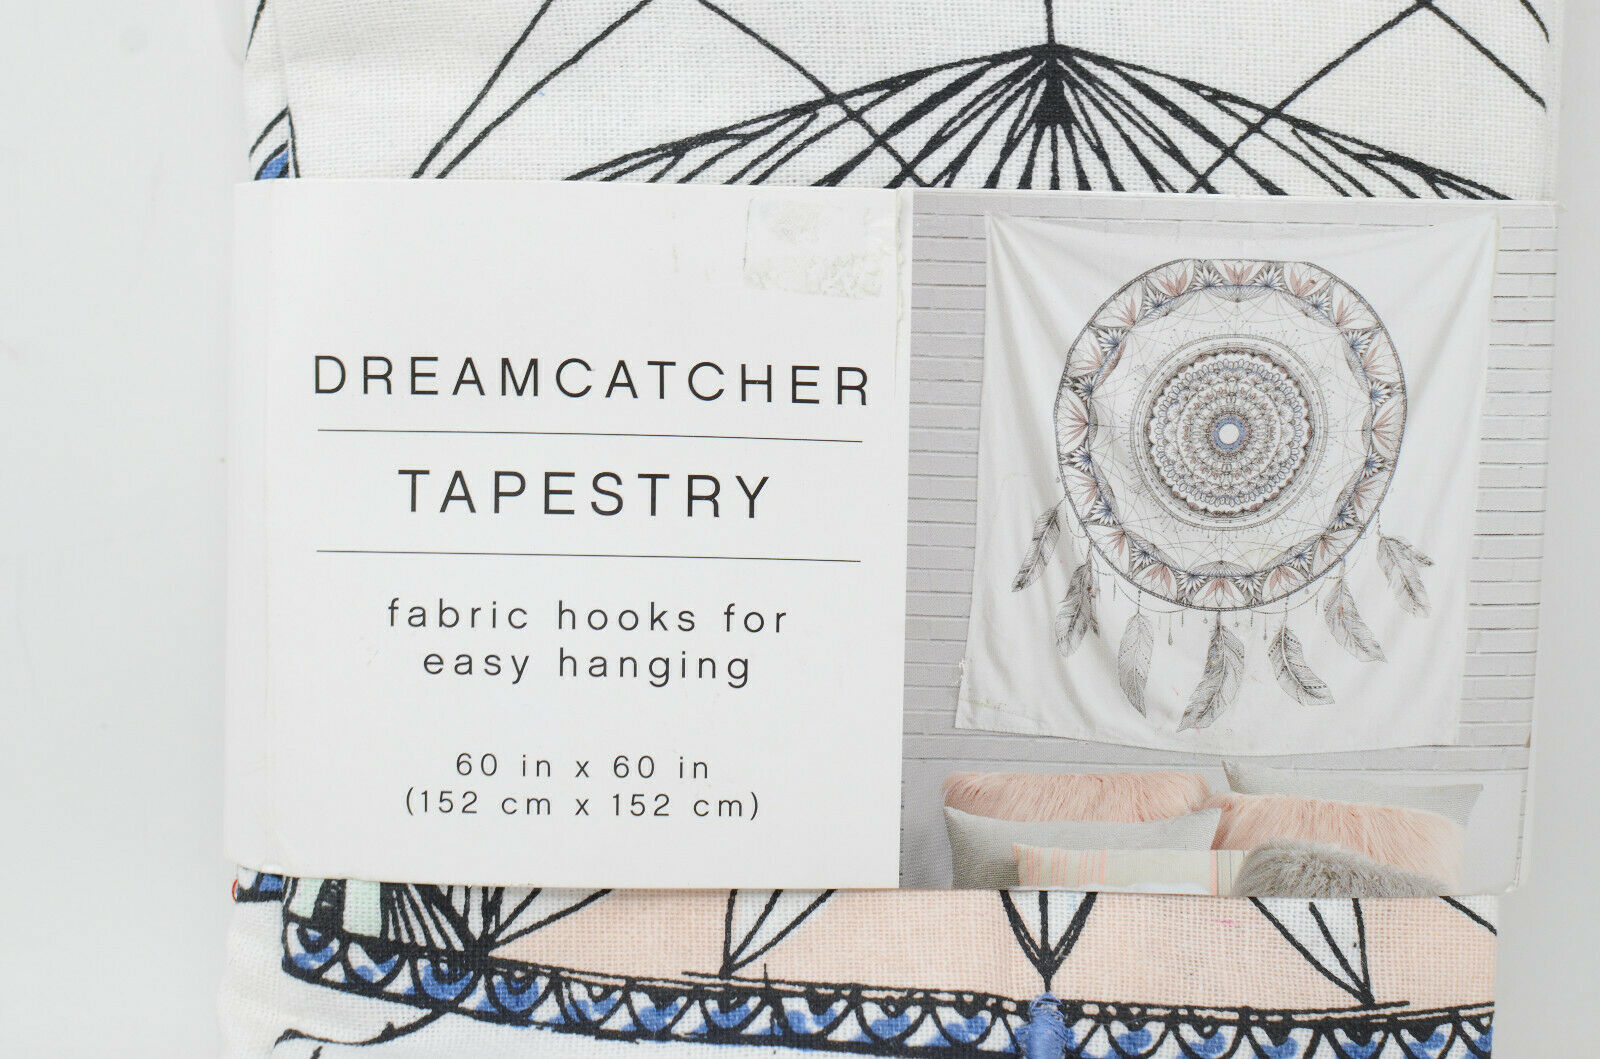 Style Co Op Dream Catcher Tapestry With Most Recent Blended Fabric Unicorn In Captivity Ii (with Border) Wall Hangings (View 7 of 20)